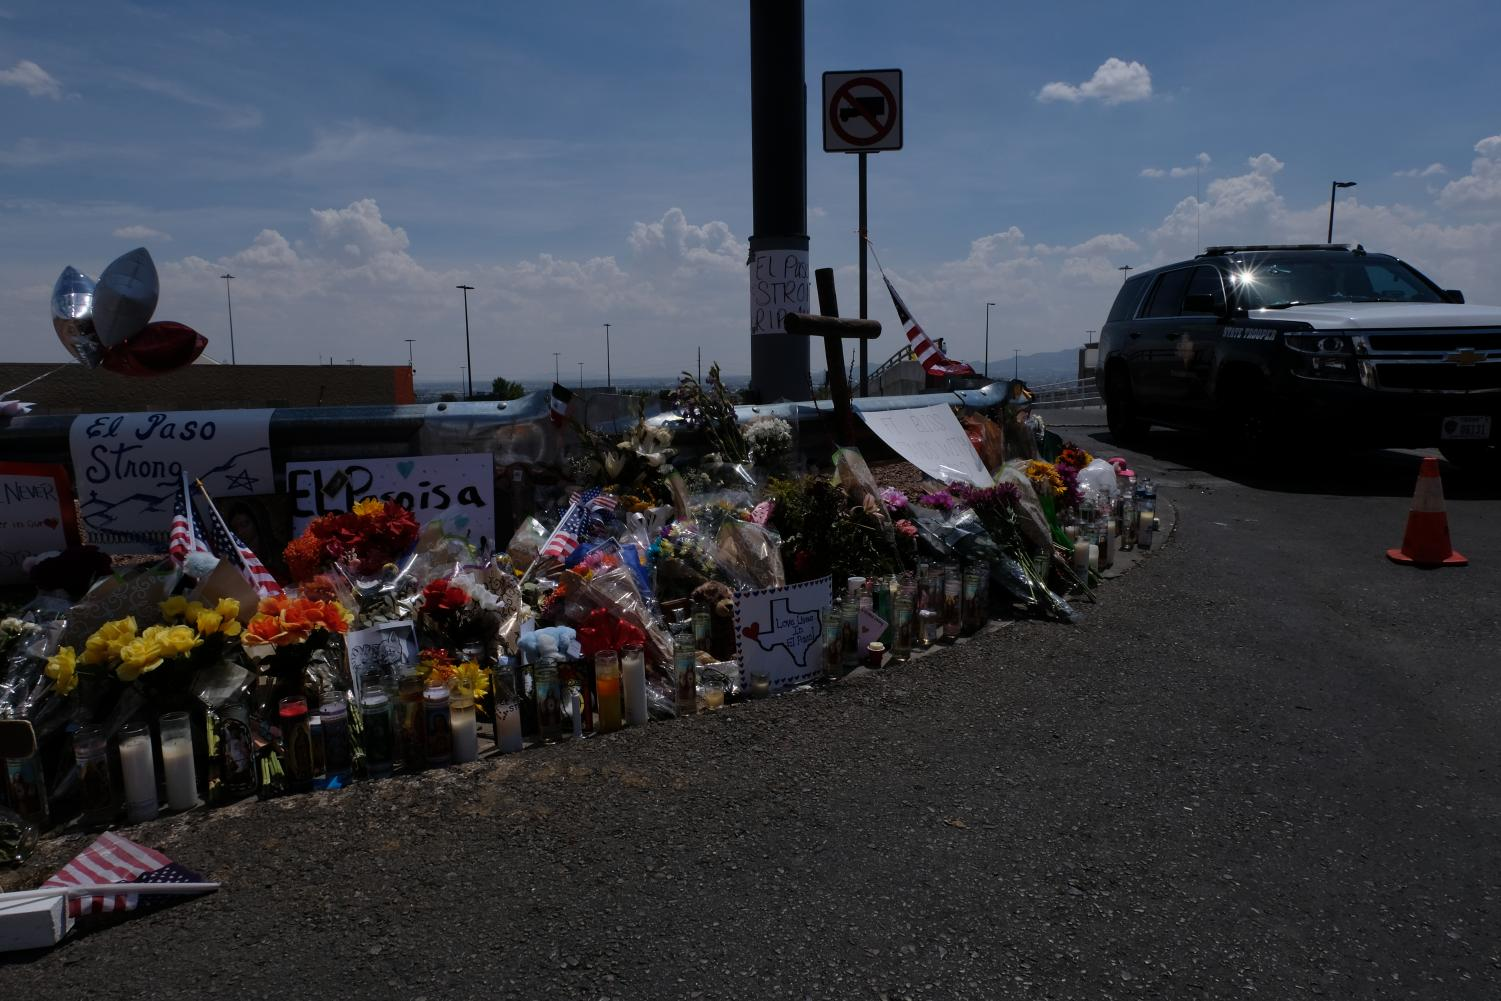 Candles and signs that read El Paso Strong are many items that were included in memorials for the victims of Saturday's mass shooting.